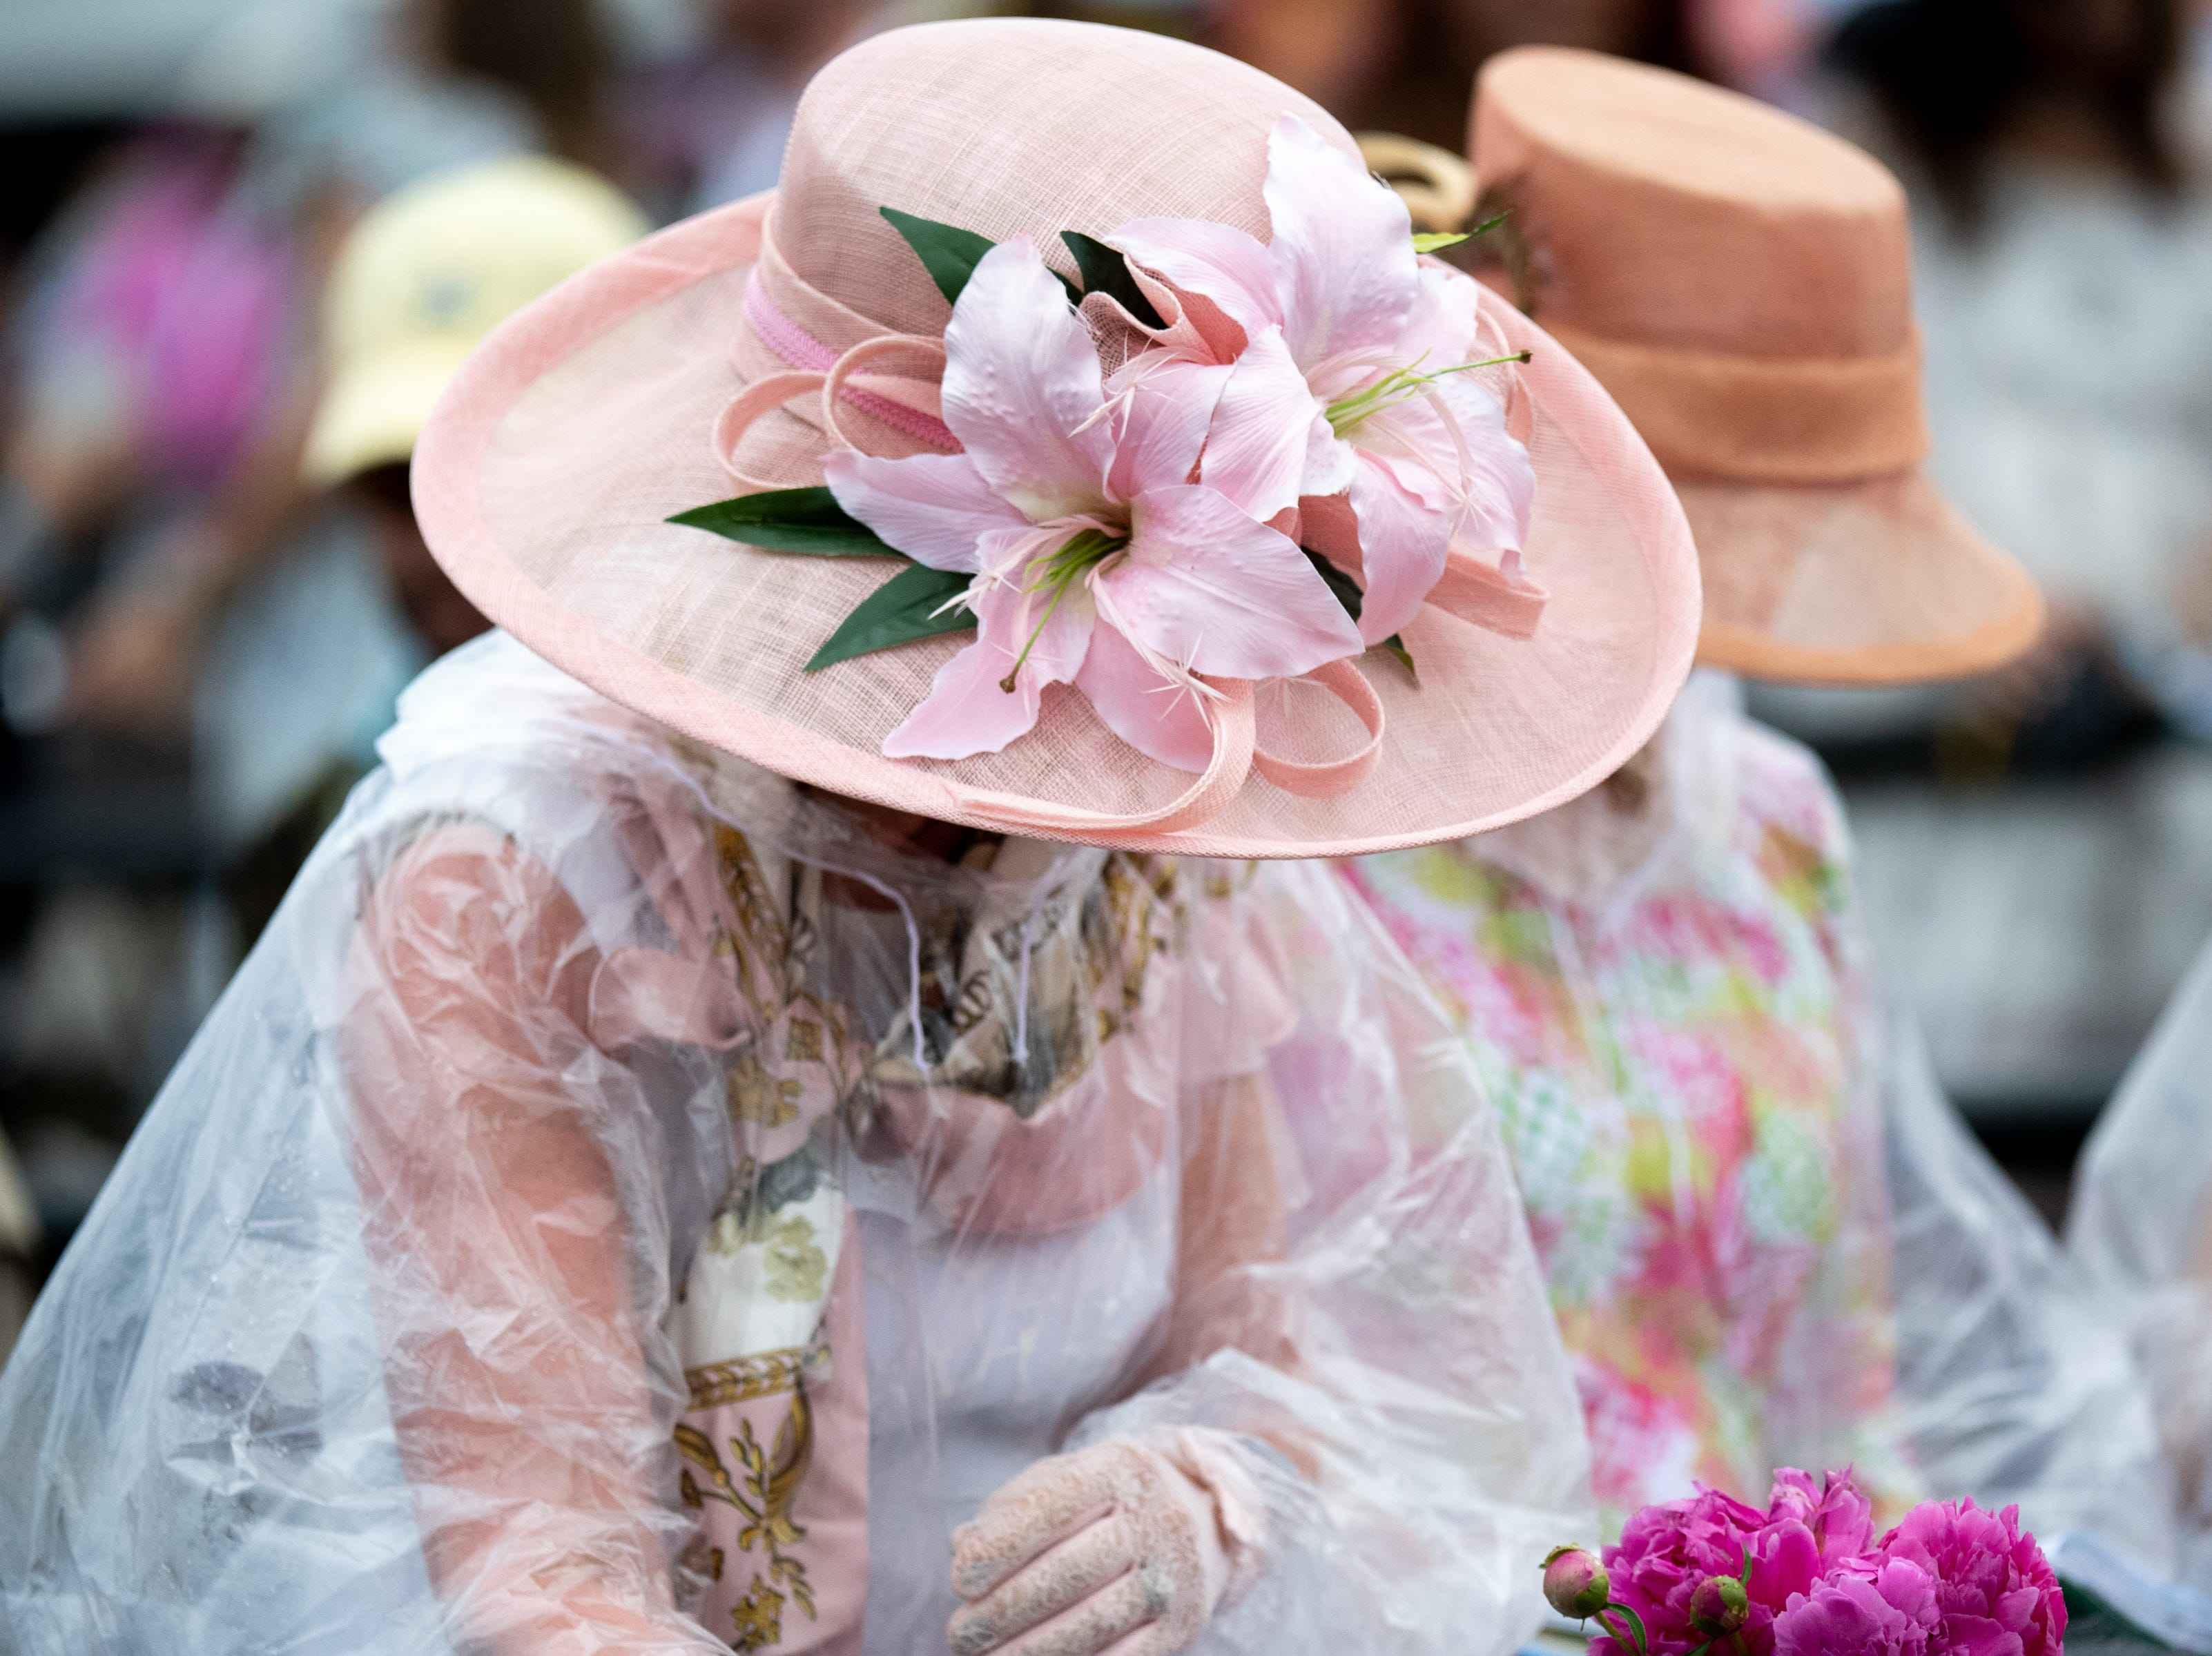 Fans don rain ponchos and large hats during the Iroquois Steeplechase at Percy Warner Park Saturday, May 11, 2019, in Nashville, Tenn.